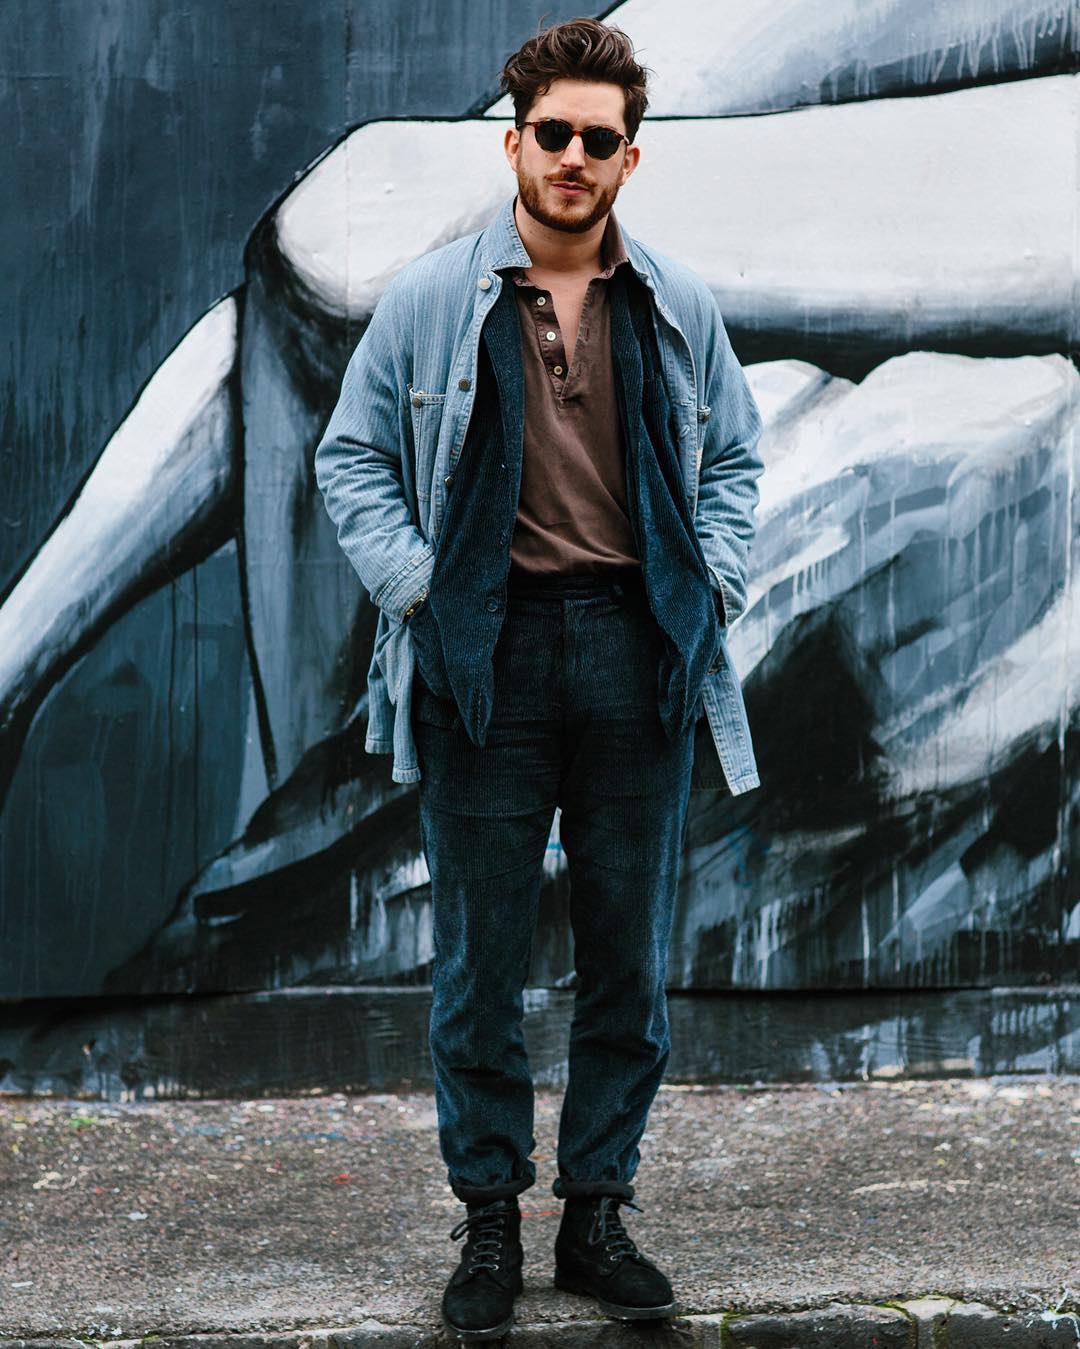 men pose jeans with sun glass